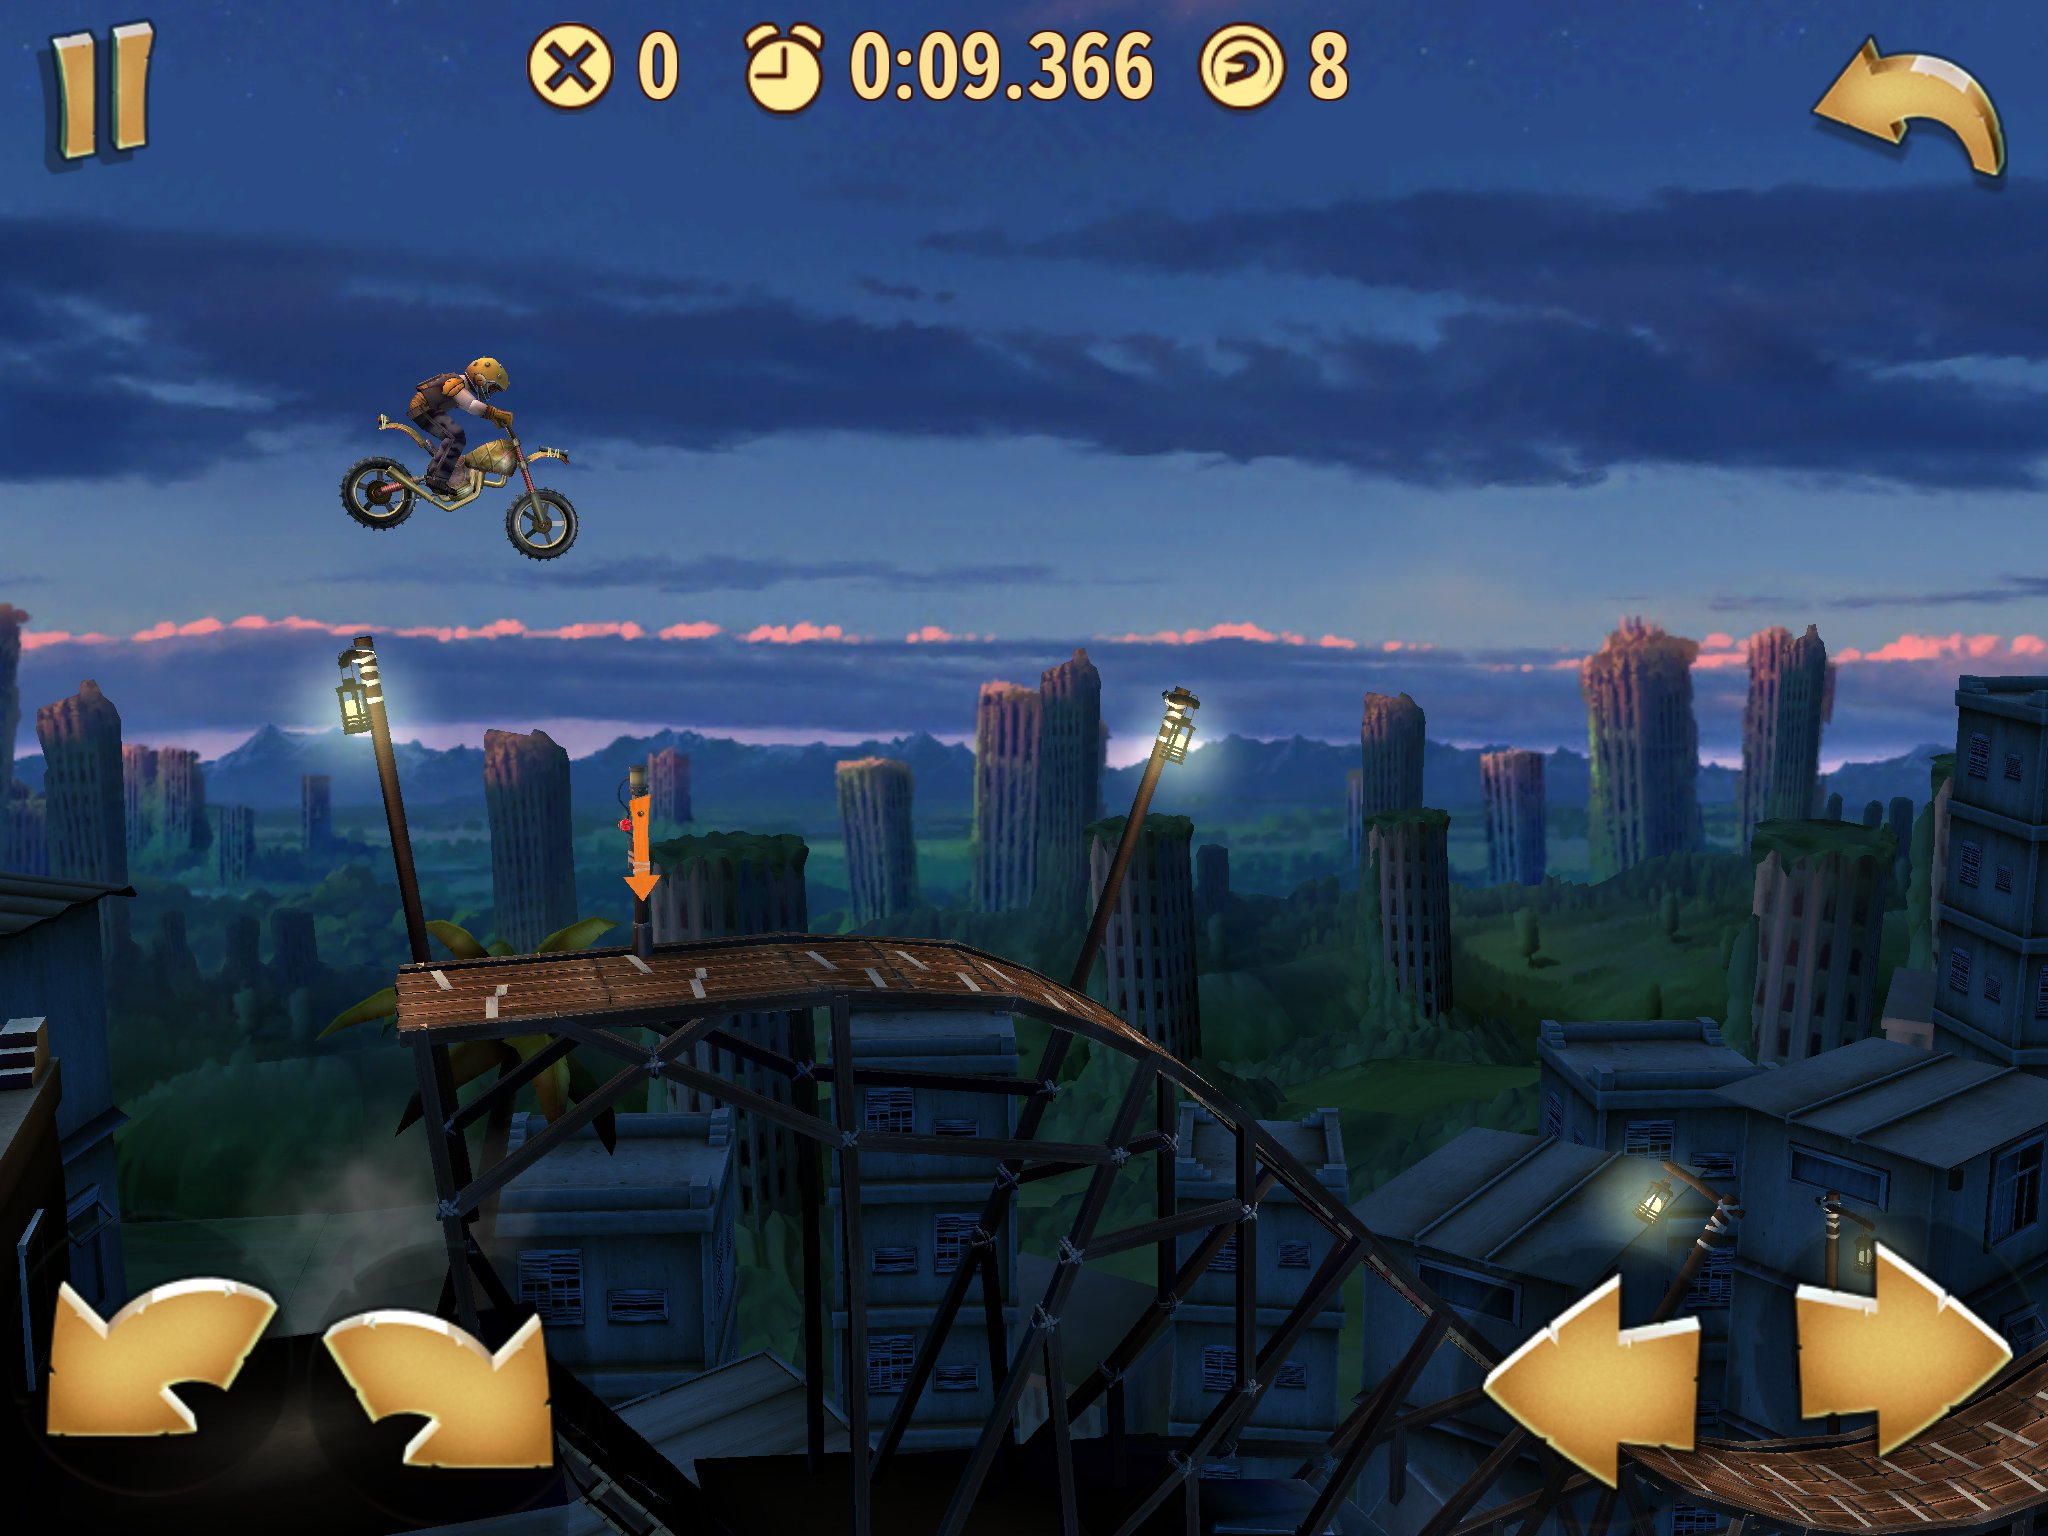 Trials: Frontier update on iOS contains new mission, more tracks, and banana peel throwing